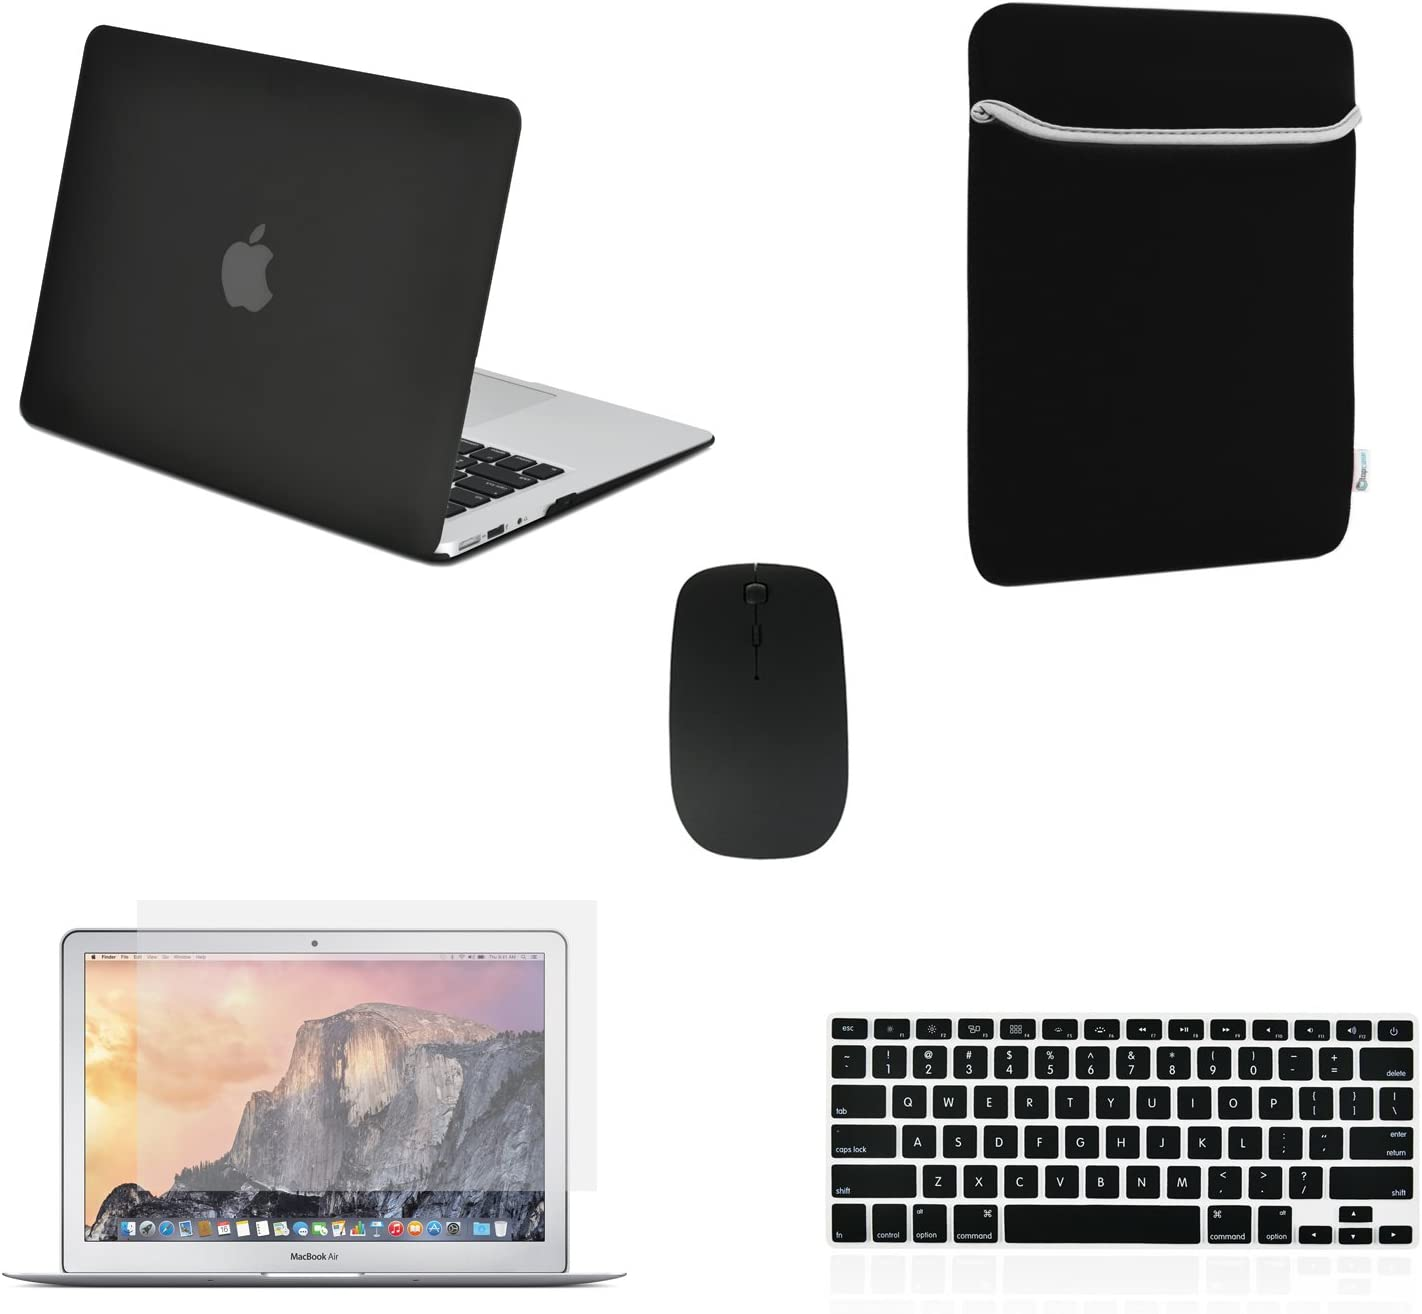 "TOP CASE - 5 in 1 Omni Bundle Rubberized Hard Cas, Keyboard Cover, Screen Protector, Sleeve Bag and Mouse Compatible MacBook Air 13"" A1369 & A1466 (Older Version, Release 2010-2017)- Black"